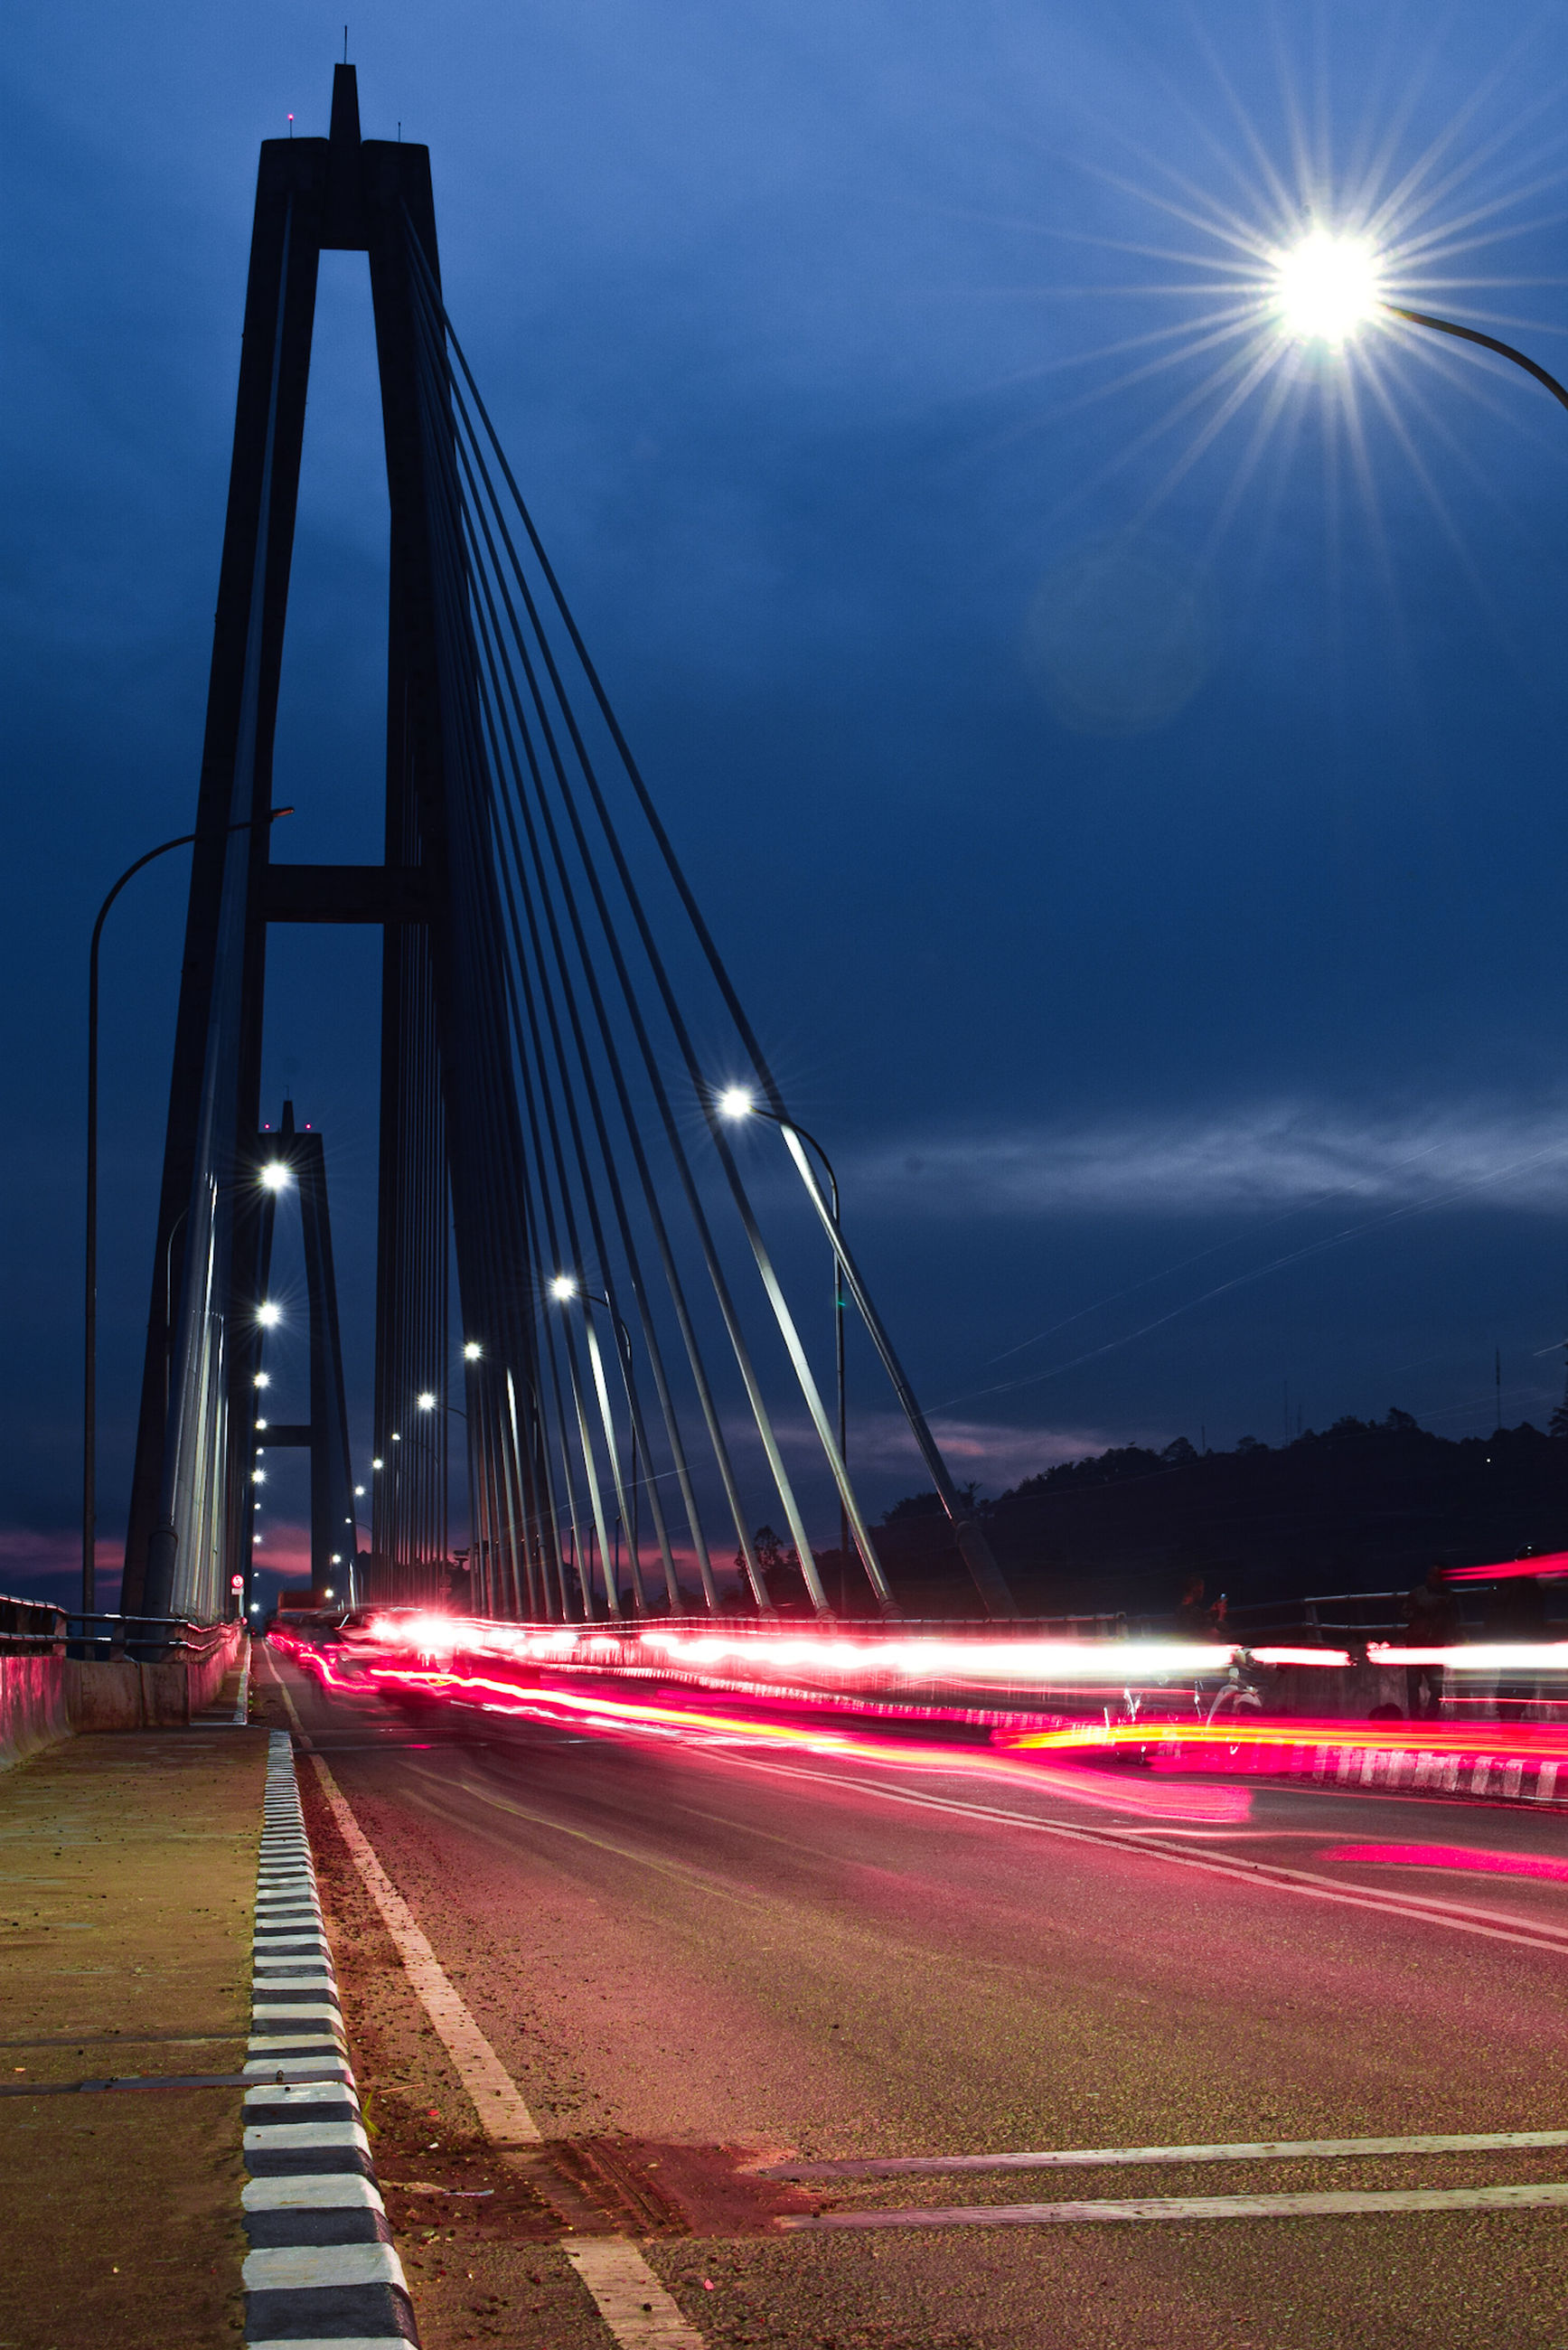 illuminated, transportation, sky, road, night, architecture, city, long exposure, built structure, motion, connection, street, bridge, light trail, speed, nature, street light, lighting equipment, bridge - man made structure, no people, lens flare, the way forward, outdoors